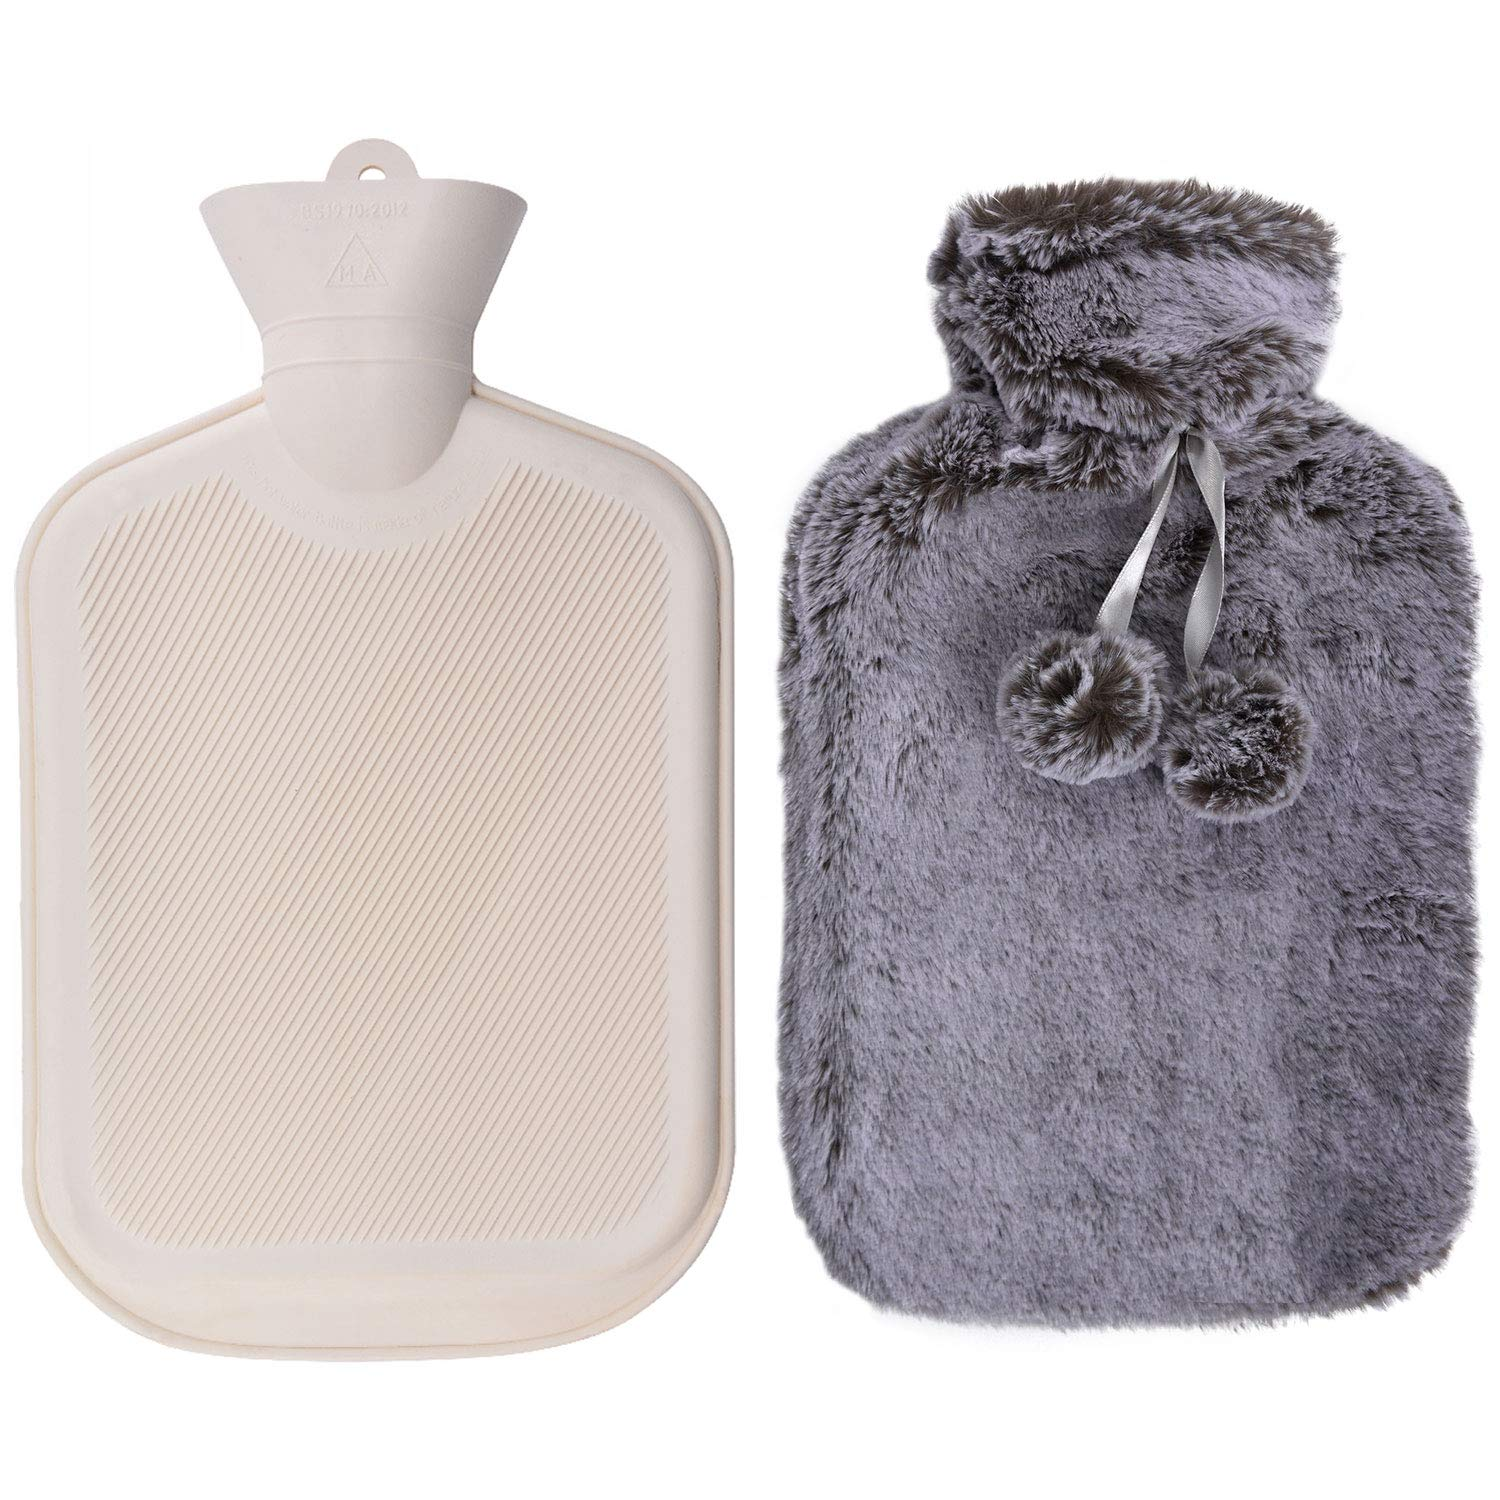 WINNPRIME Hot Water Bottle 2 Liters, Natural Rubber Hot Water Bag with Luxurious Faux Fur Cover, Great for Pain Relief, Hot Compress and Heat Therapy (Gray)